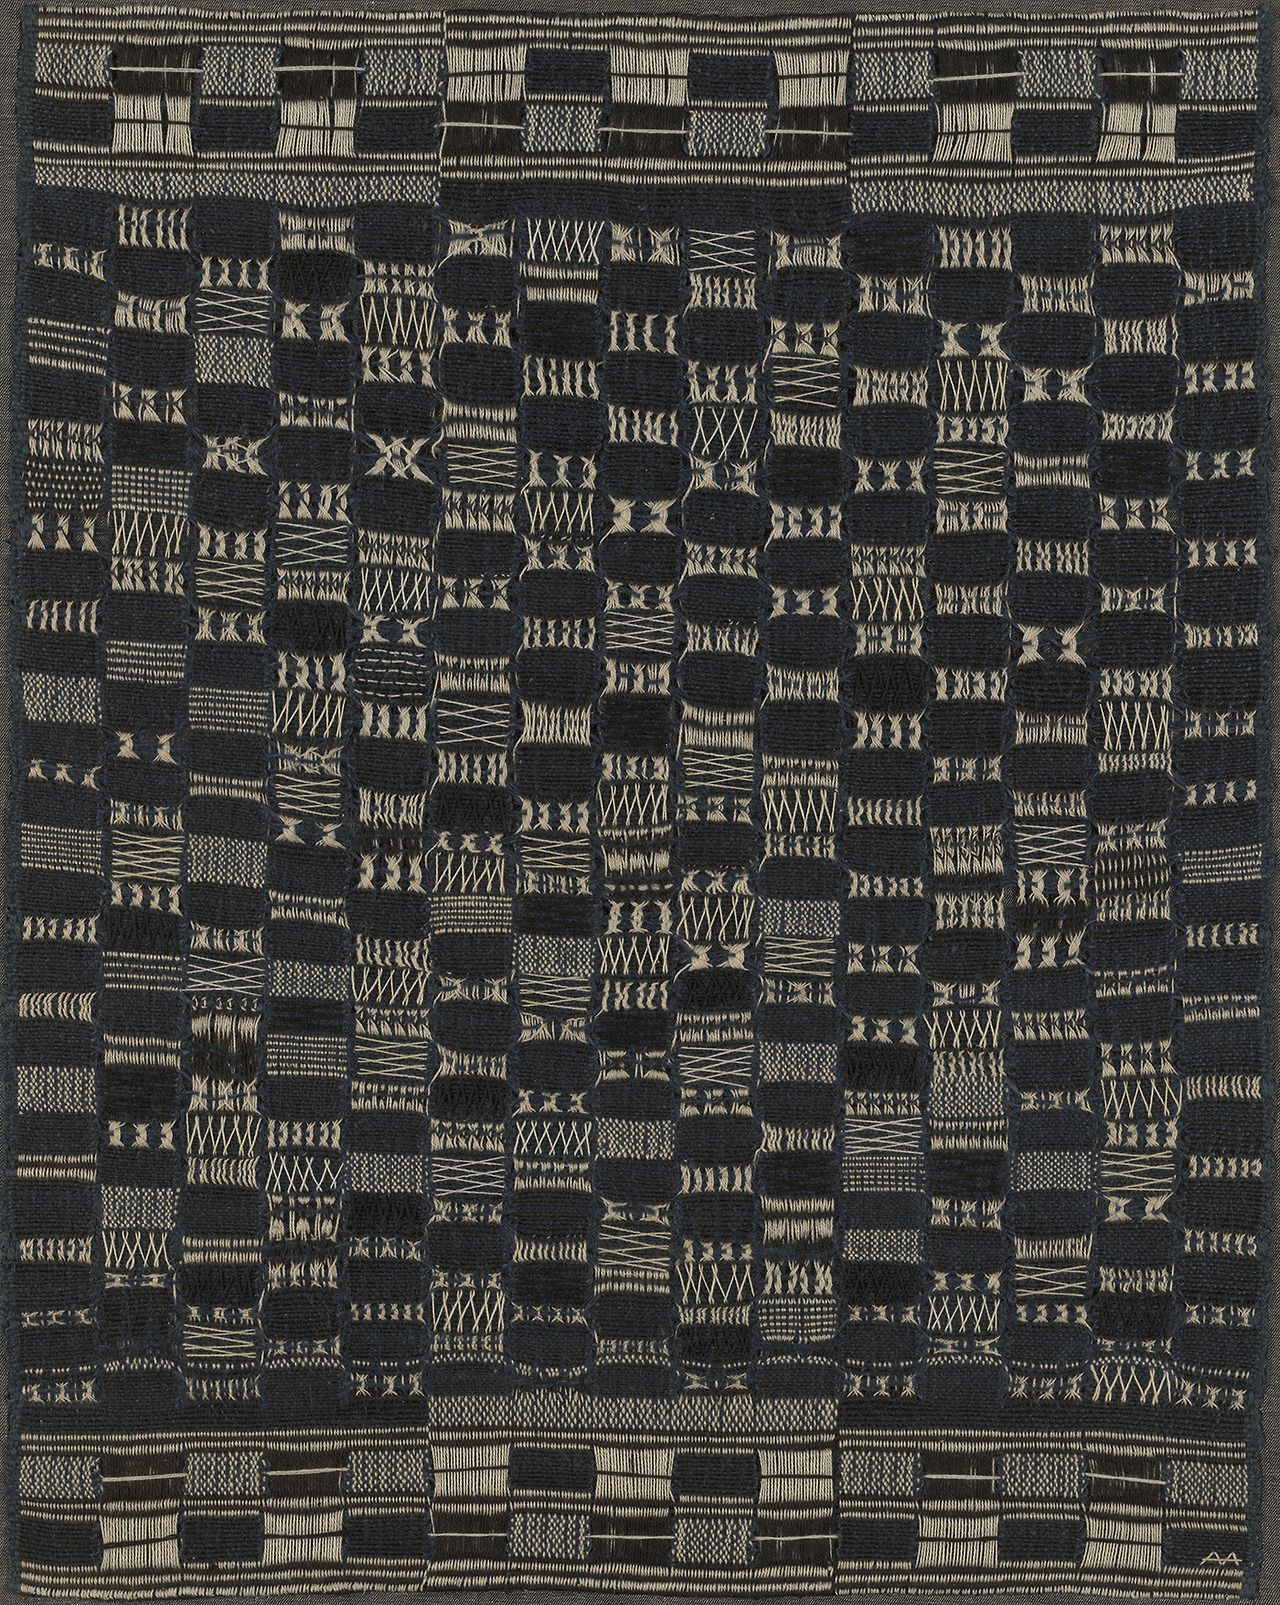 """garadinervi:  """"Anni Albers, Thickly Settled, 1956; included in Small-Great Objects: Anni and Josef Albers in the Americas, at the Yale University Art Gallery, New Haven, CT, February 3 – June 25, 2017  """""""